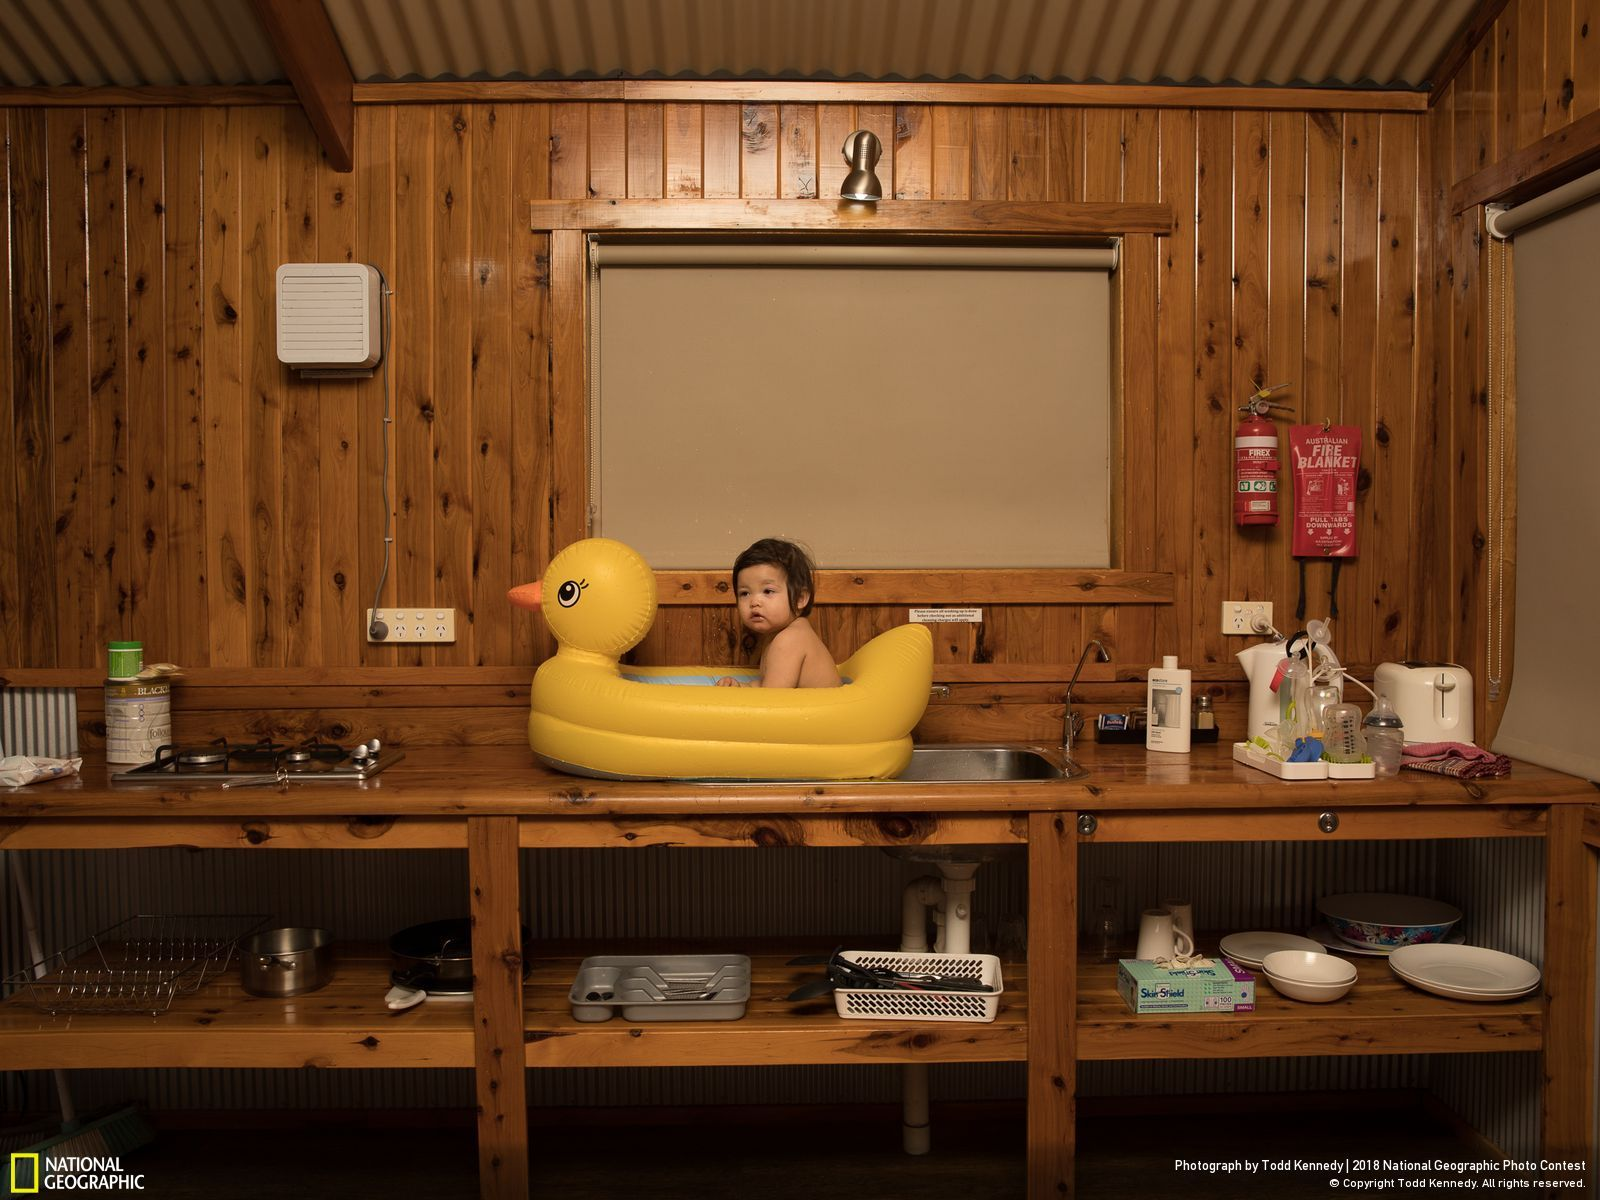 Second Prix People National Geographic Photo Contest, Roadside Motel Todd Kennedy